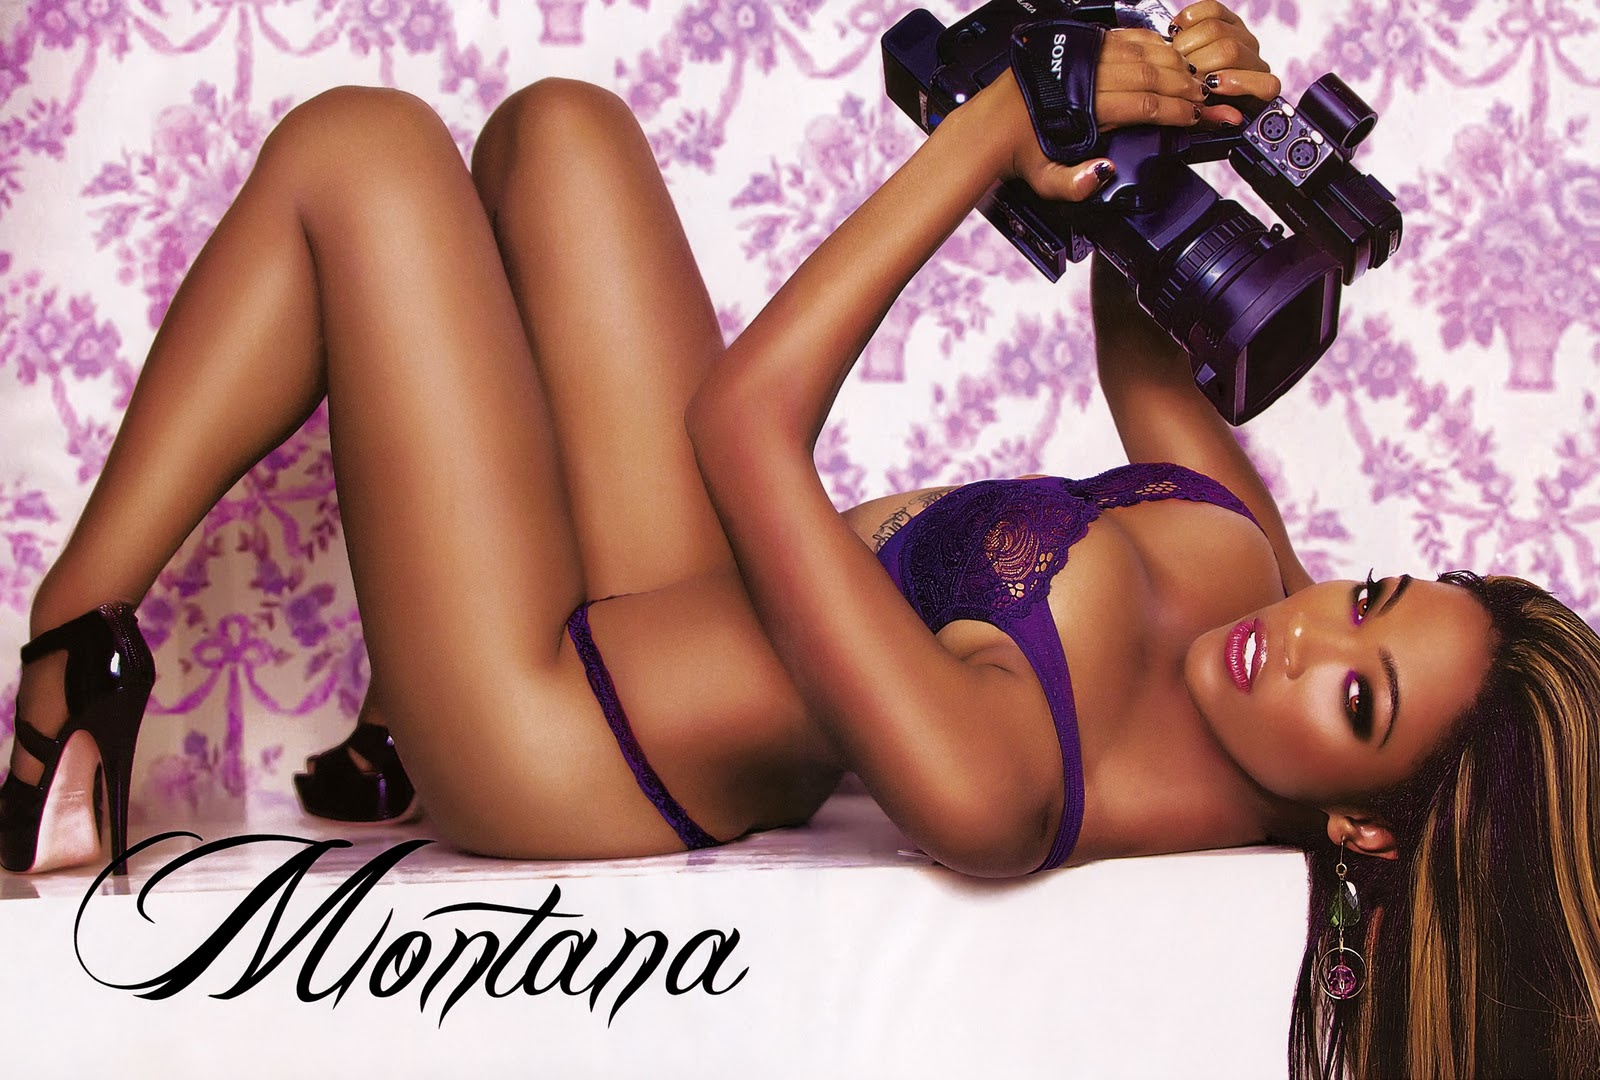 "Edutainment: Montana Fishburne ""In Blackmen Magazine Holiday Gift ...montana fishburne"